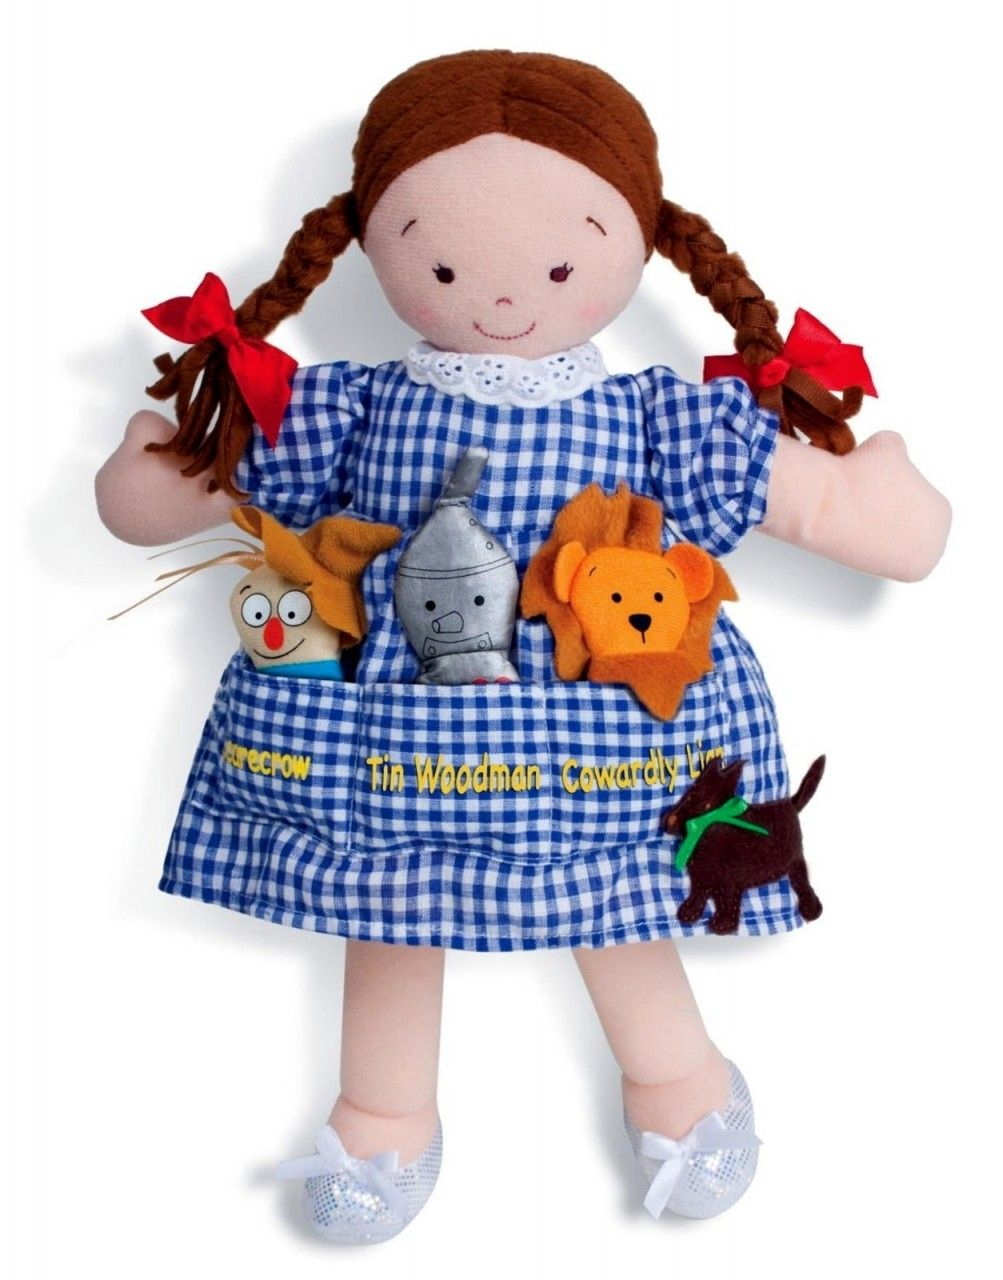 Dolly pockets wizard of oz doll and finger puppets